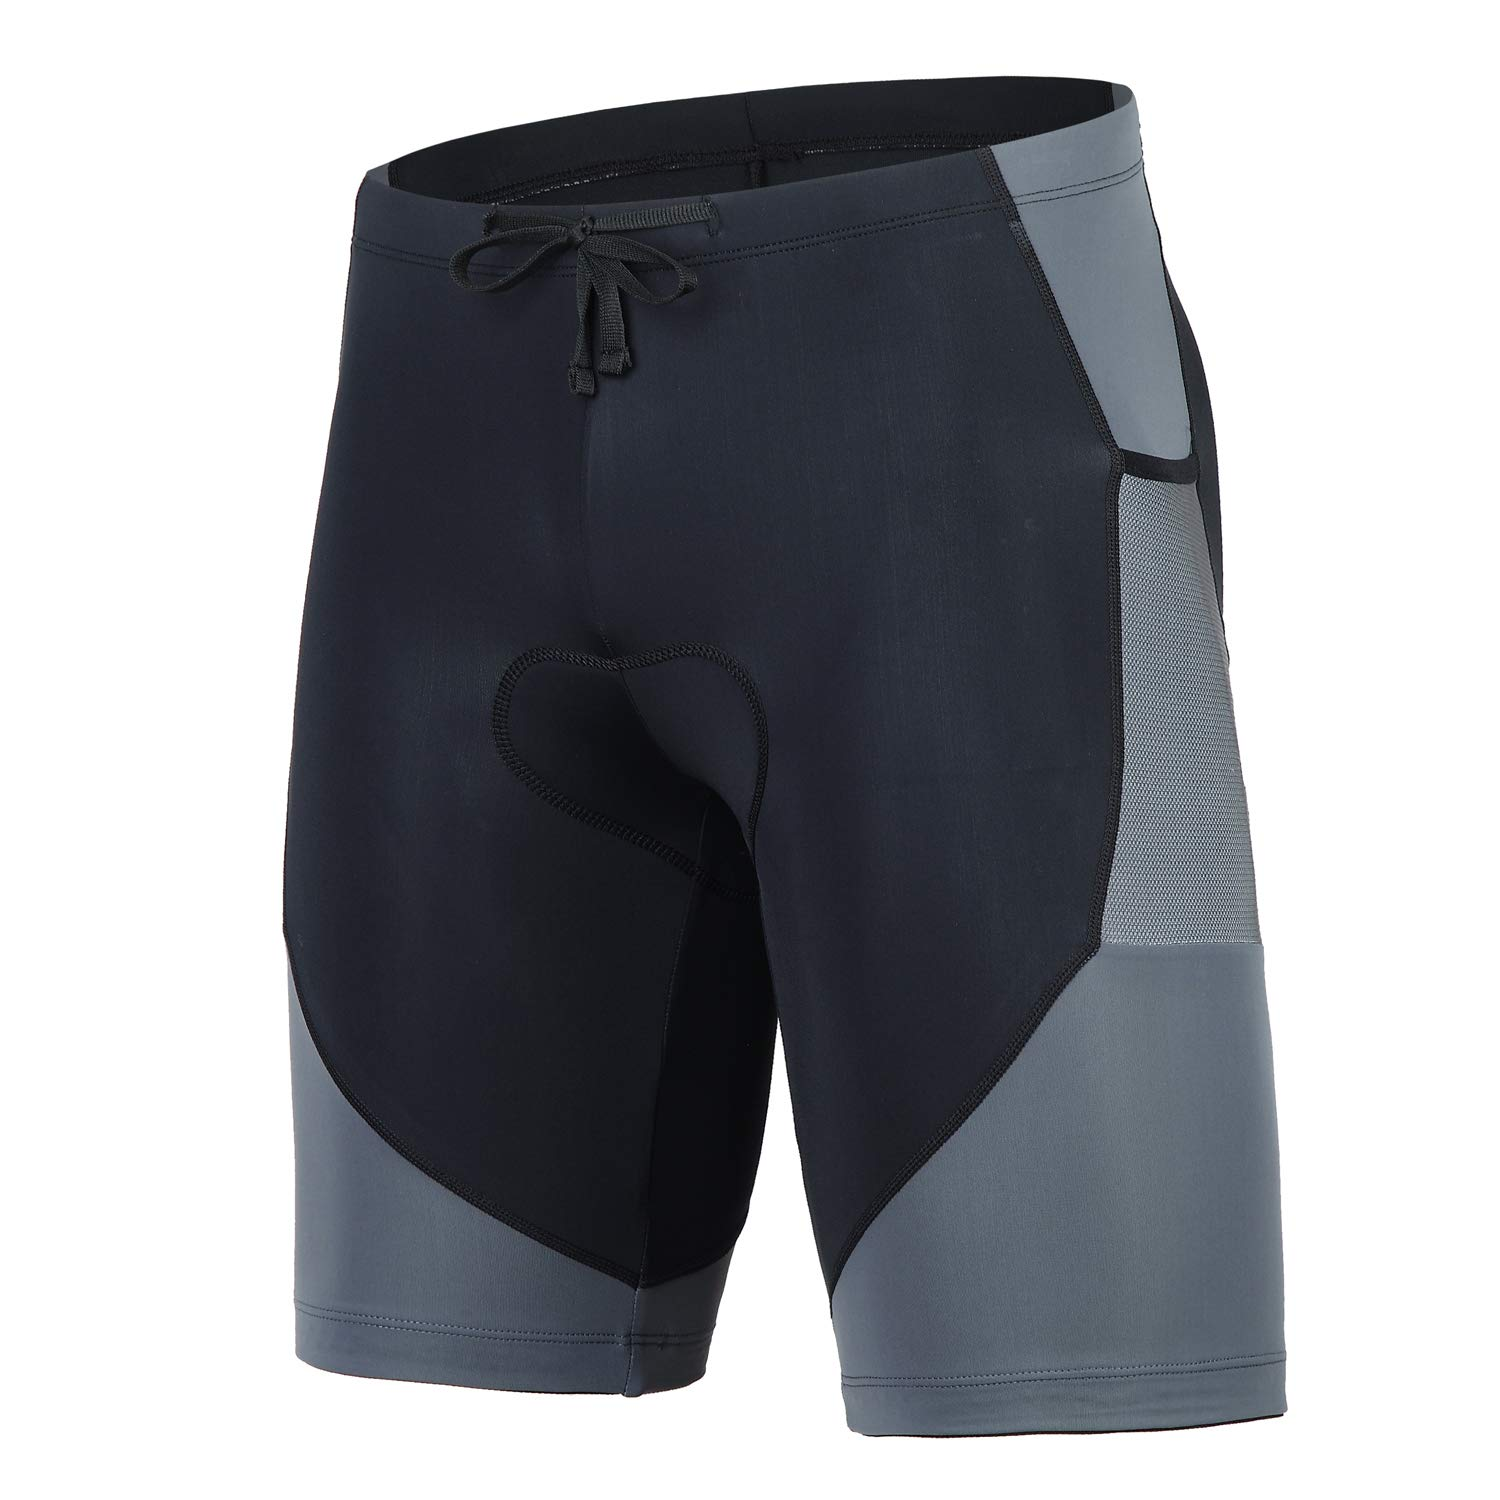 beroy Triathlon Shorts Pockets Running